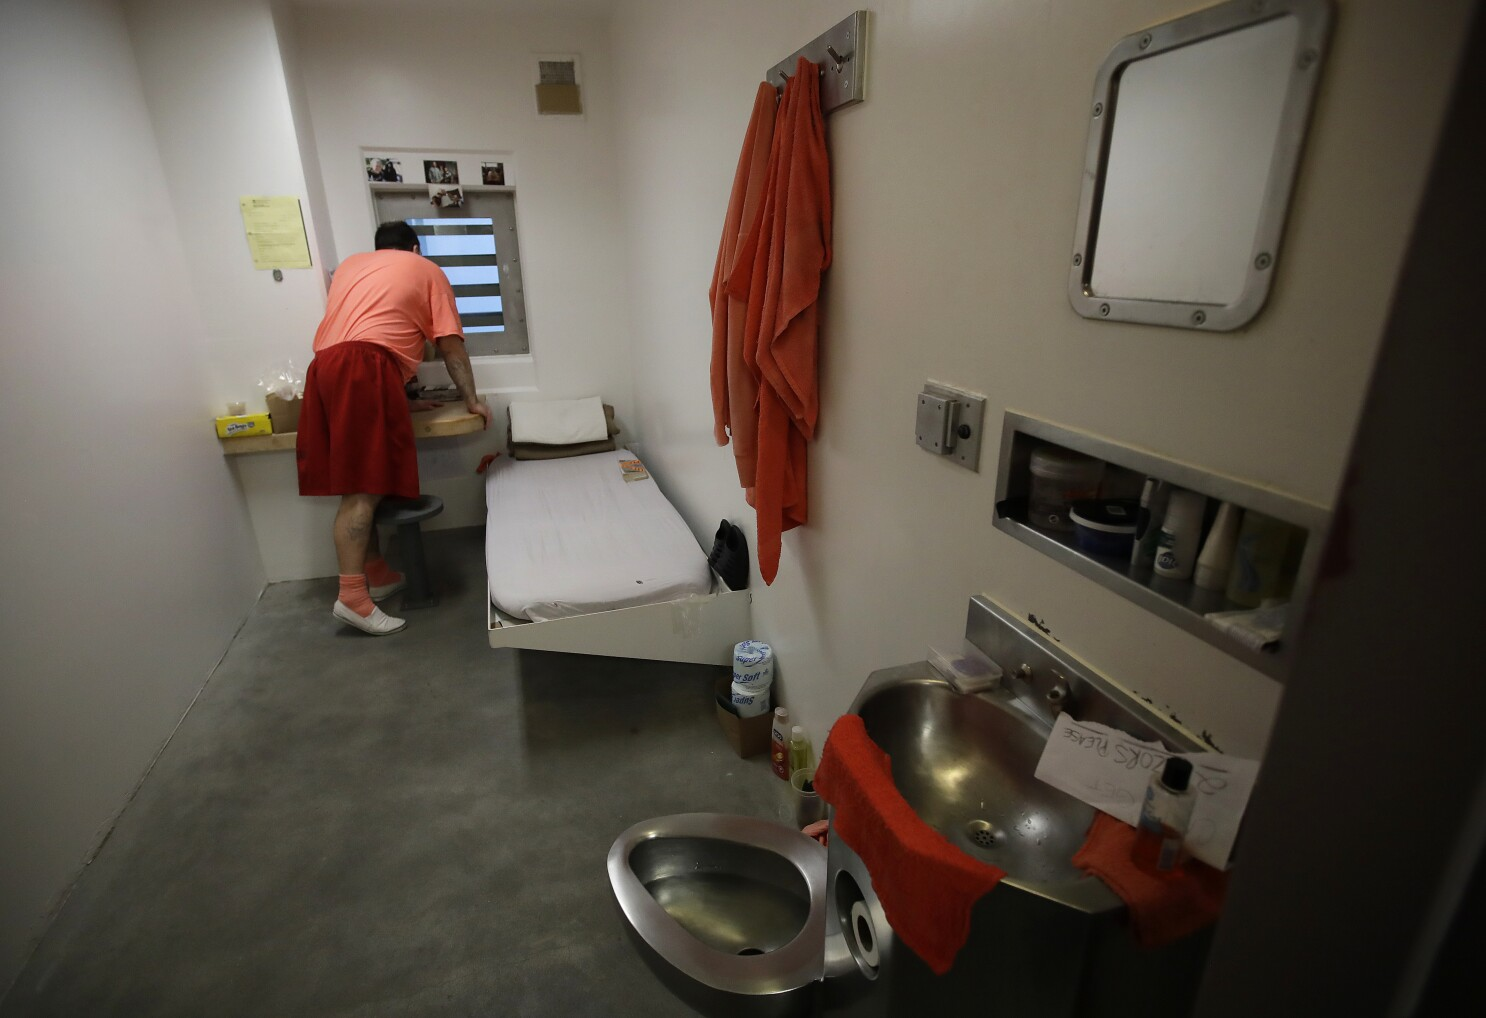 California Jails Use Kinder Approach To Solitary Confinement Los Angeles Times